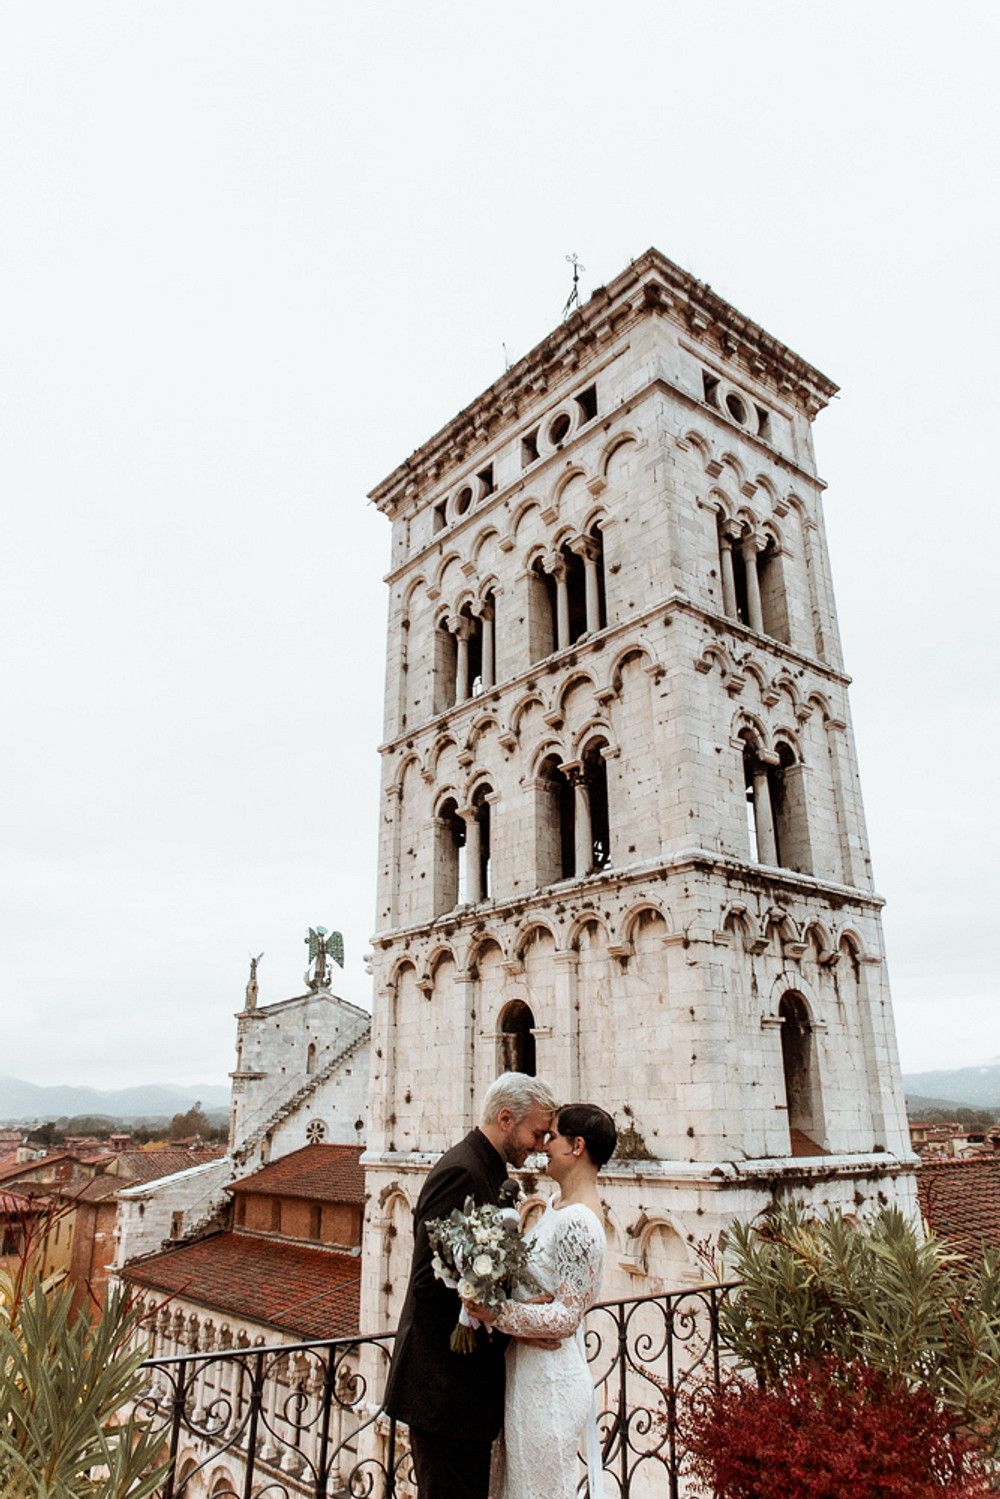 Halloween Elopement in Italy at Piazza di San Michele